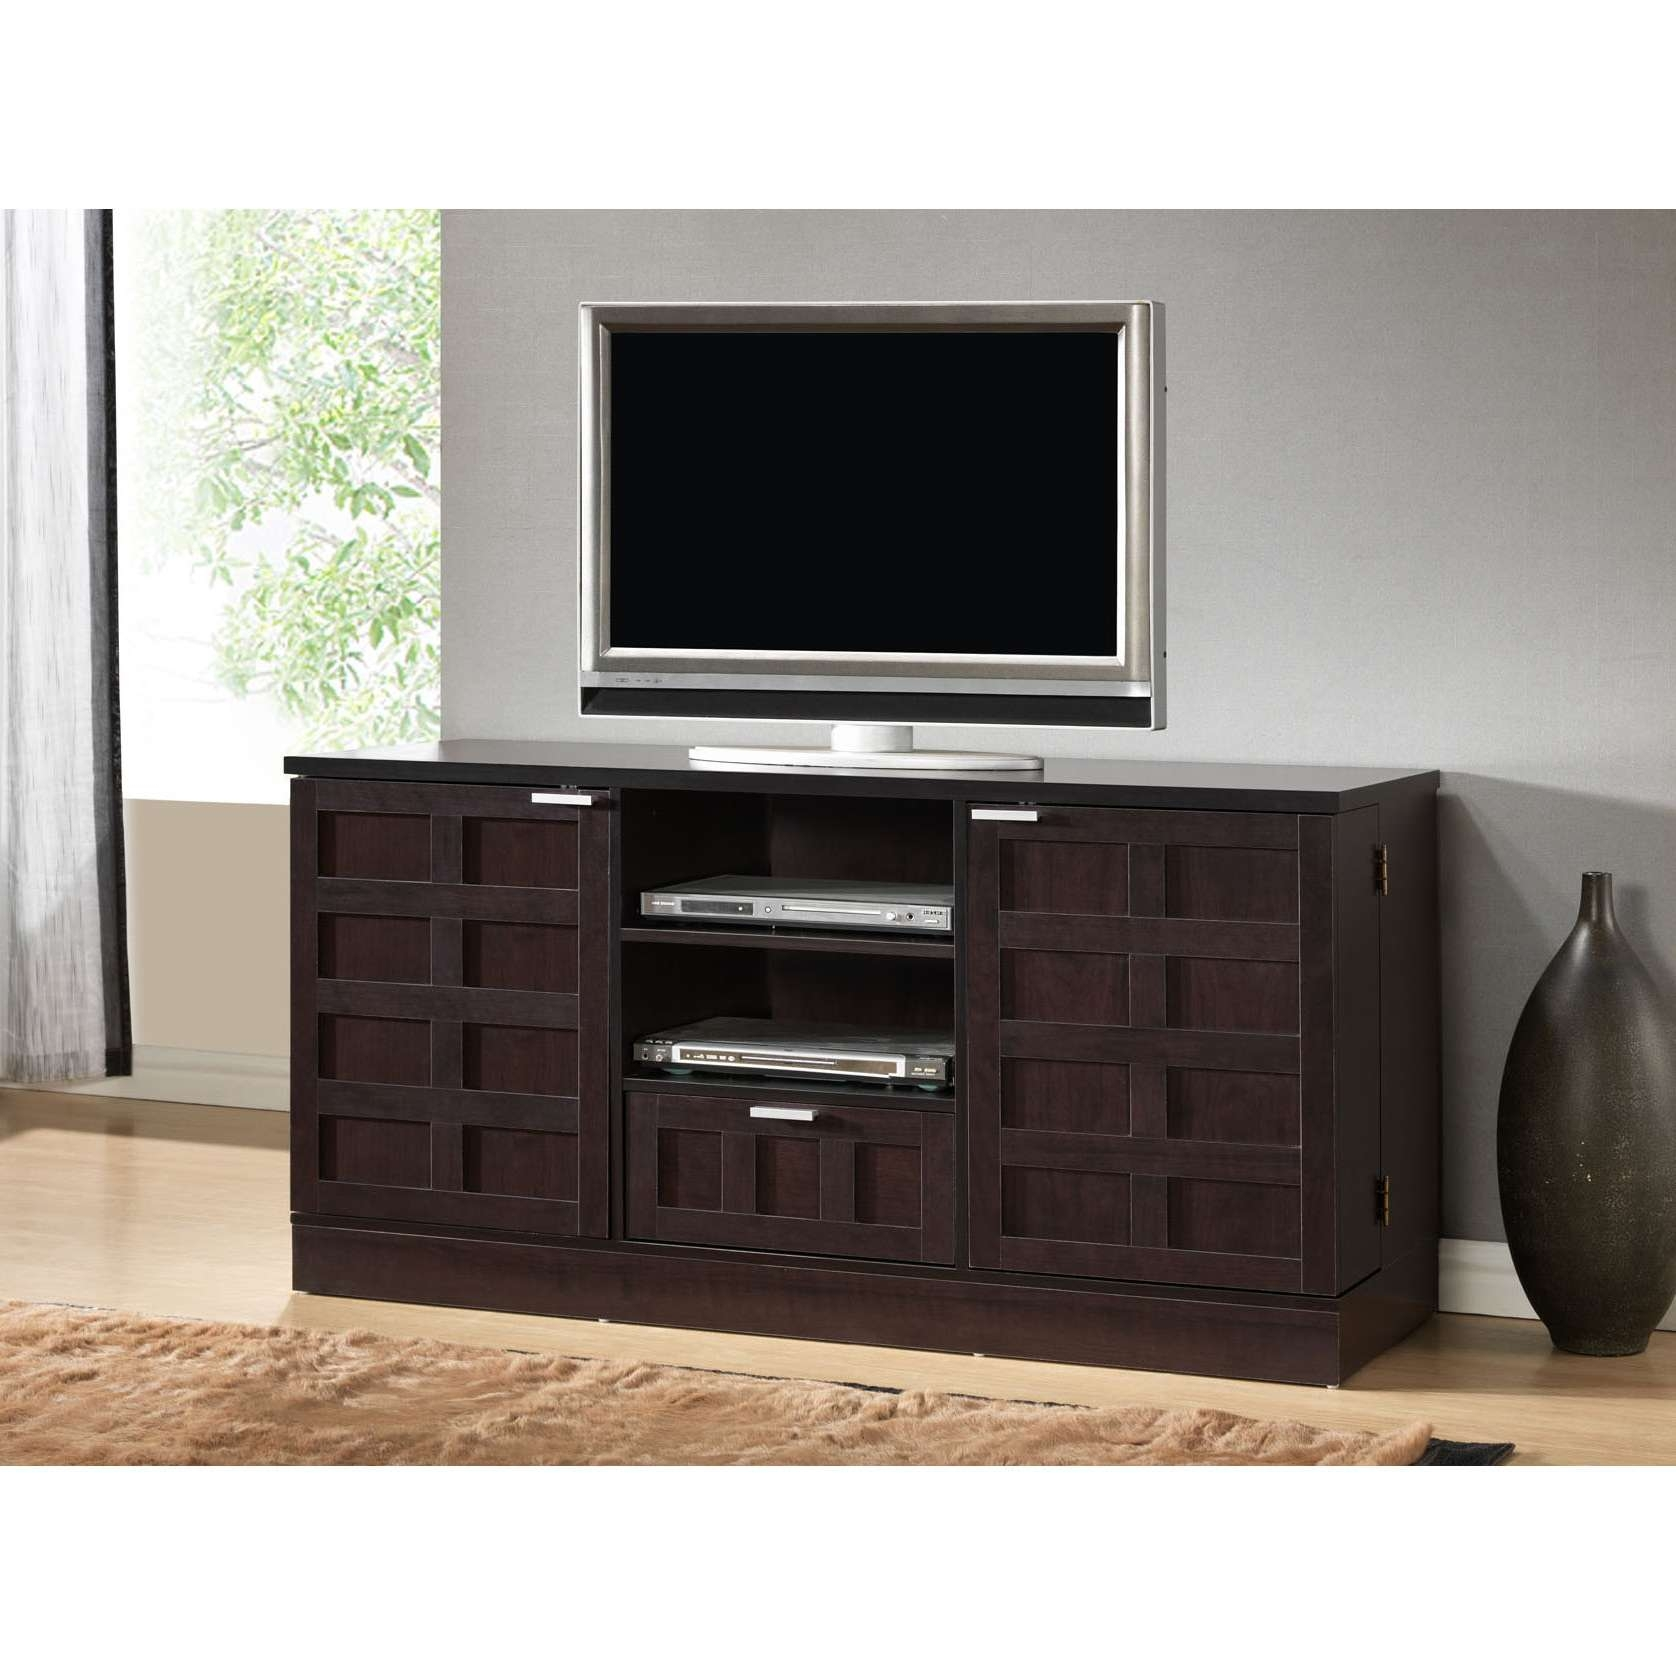 Ideas Modern Tv Cabinet Design Amazing Cabinets For Flat Screens Within Contemporary Tv Cabinets For Flat Screens (View 15 of 20)